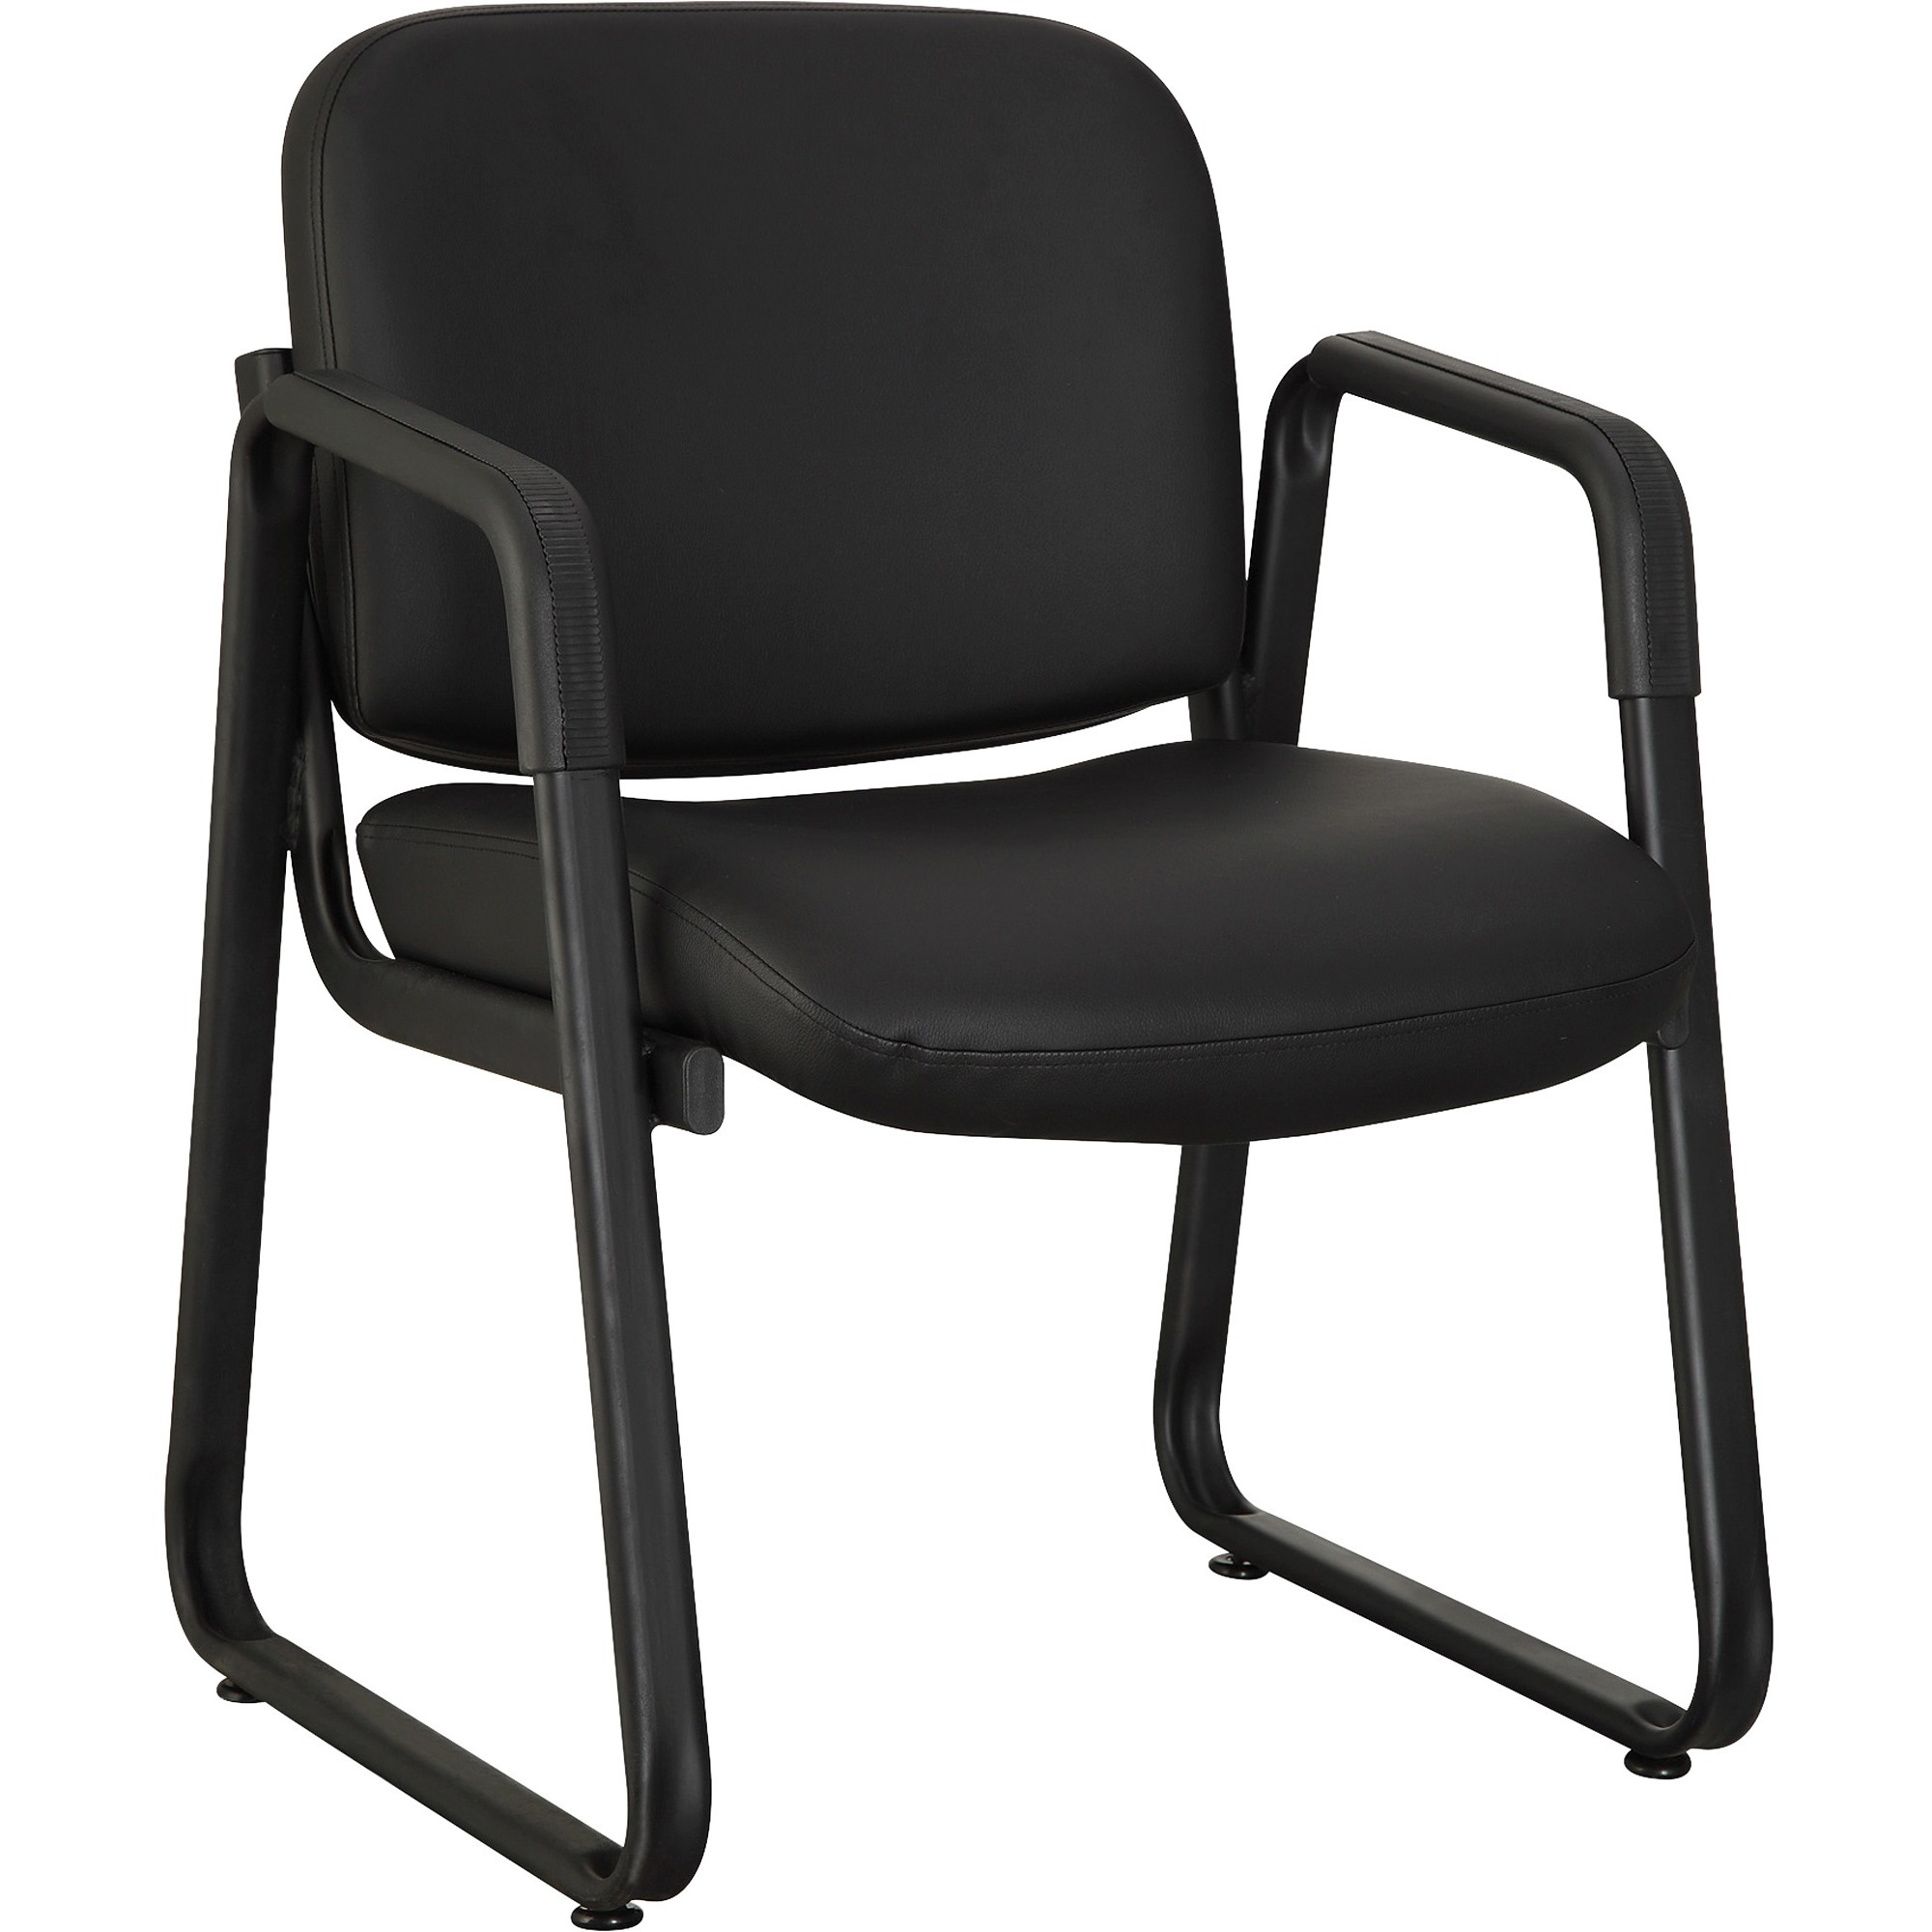 Lorell Black Leather Guest Reception Waiting Room Chair